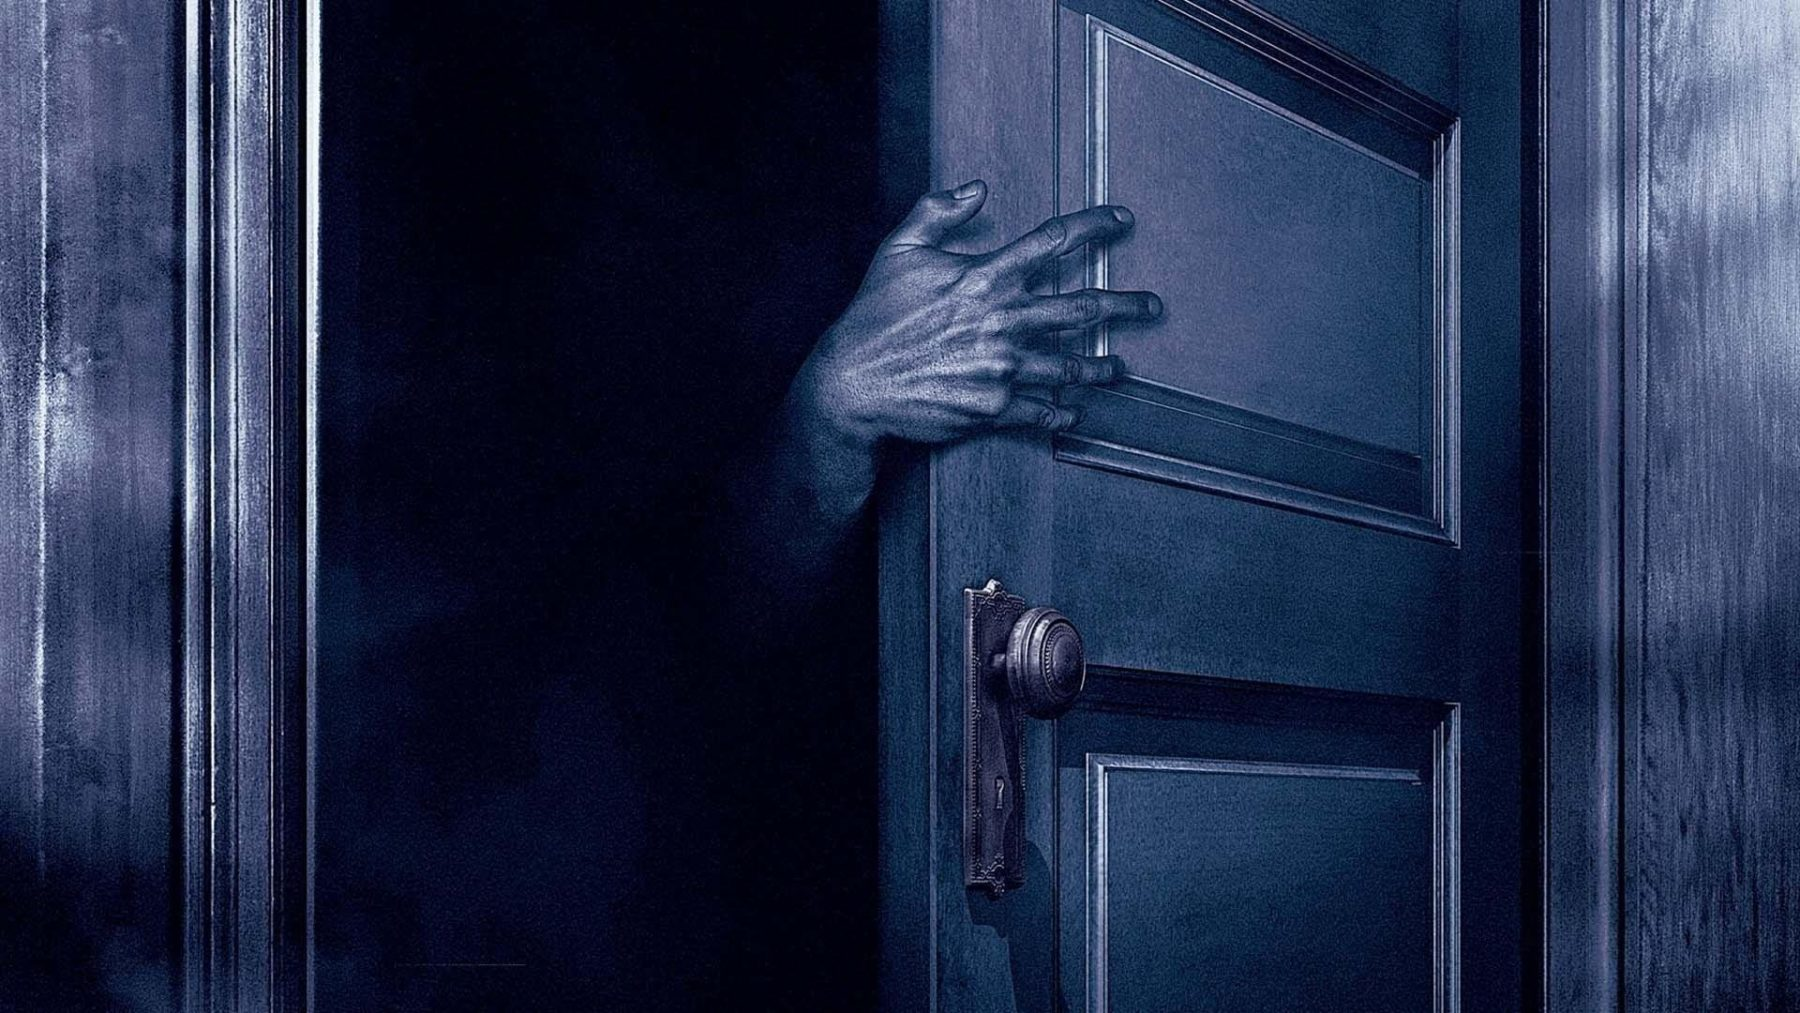 The Boogeyman de Stephen King será llevado al cine por Fox y guionistas de A Quiet Place